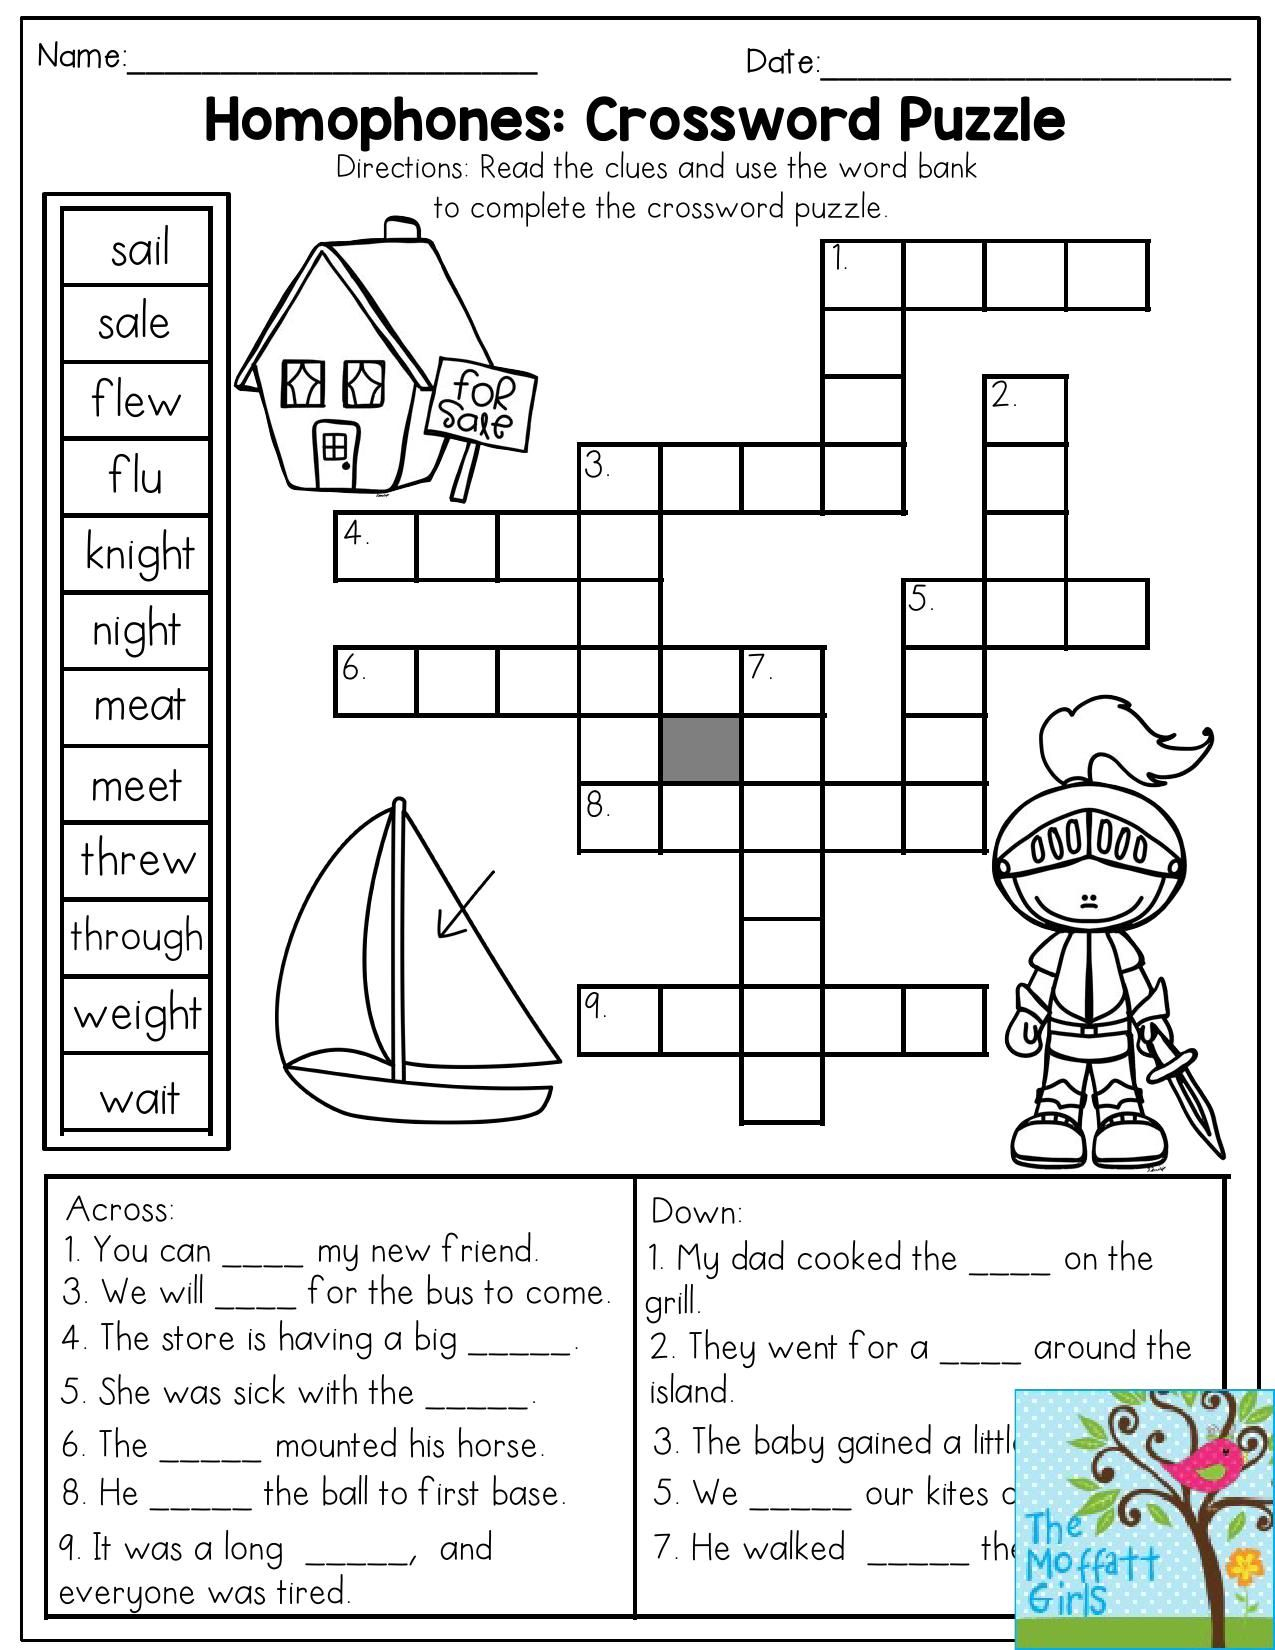 Homophones: Crossword Puzzle- Read The Clues And Use The Word Bank - Printable Crossword Puzzle Grade 3